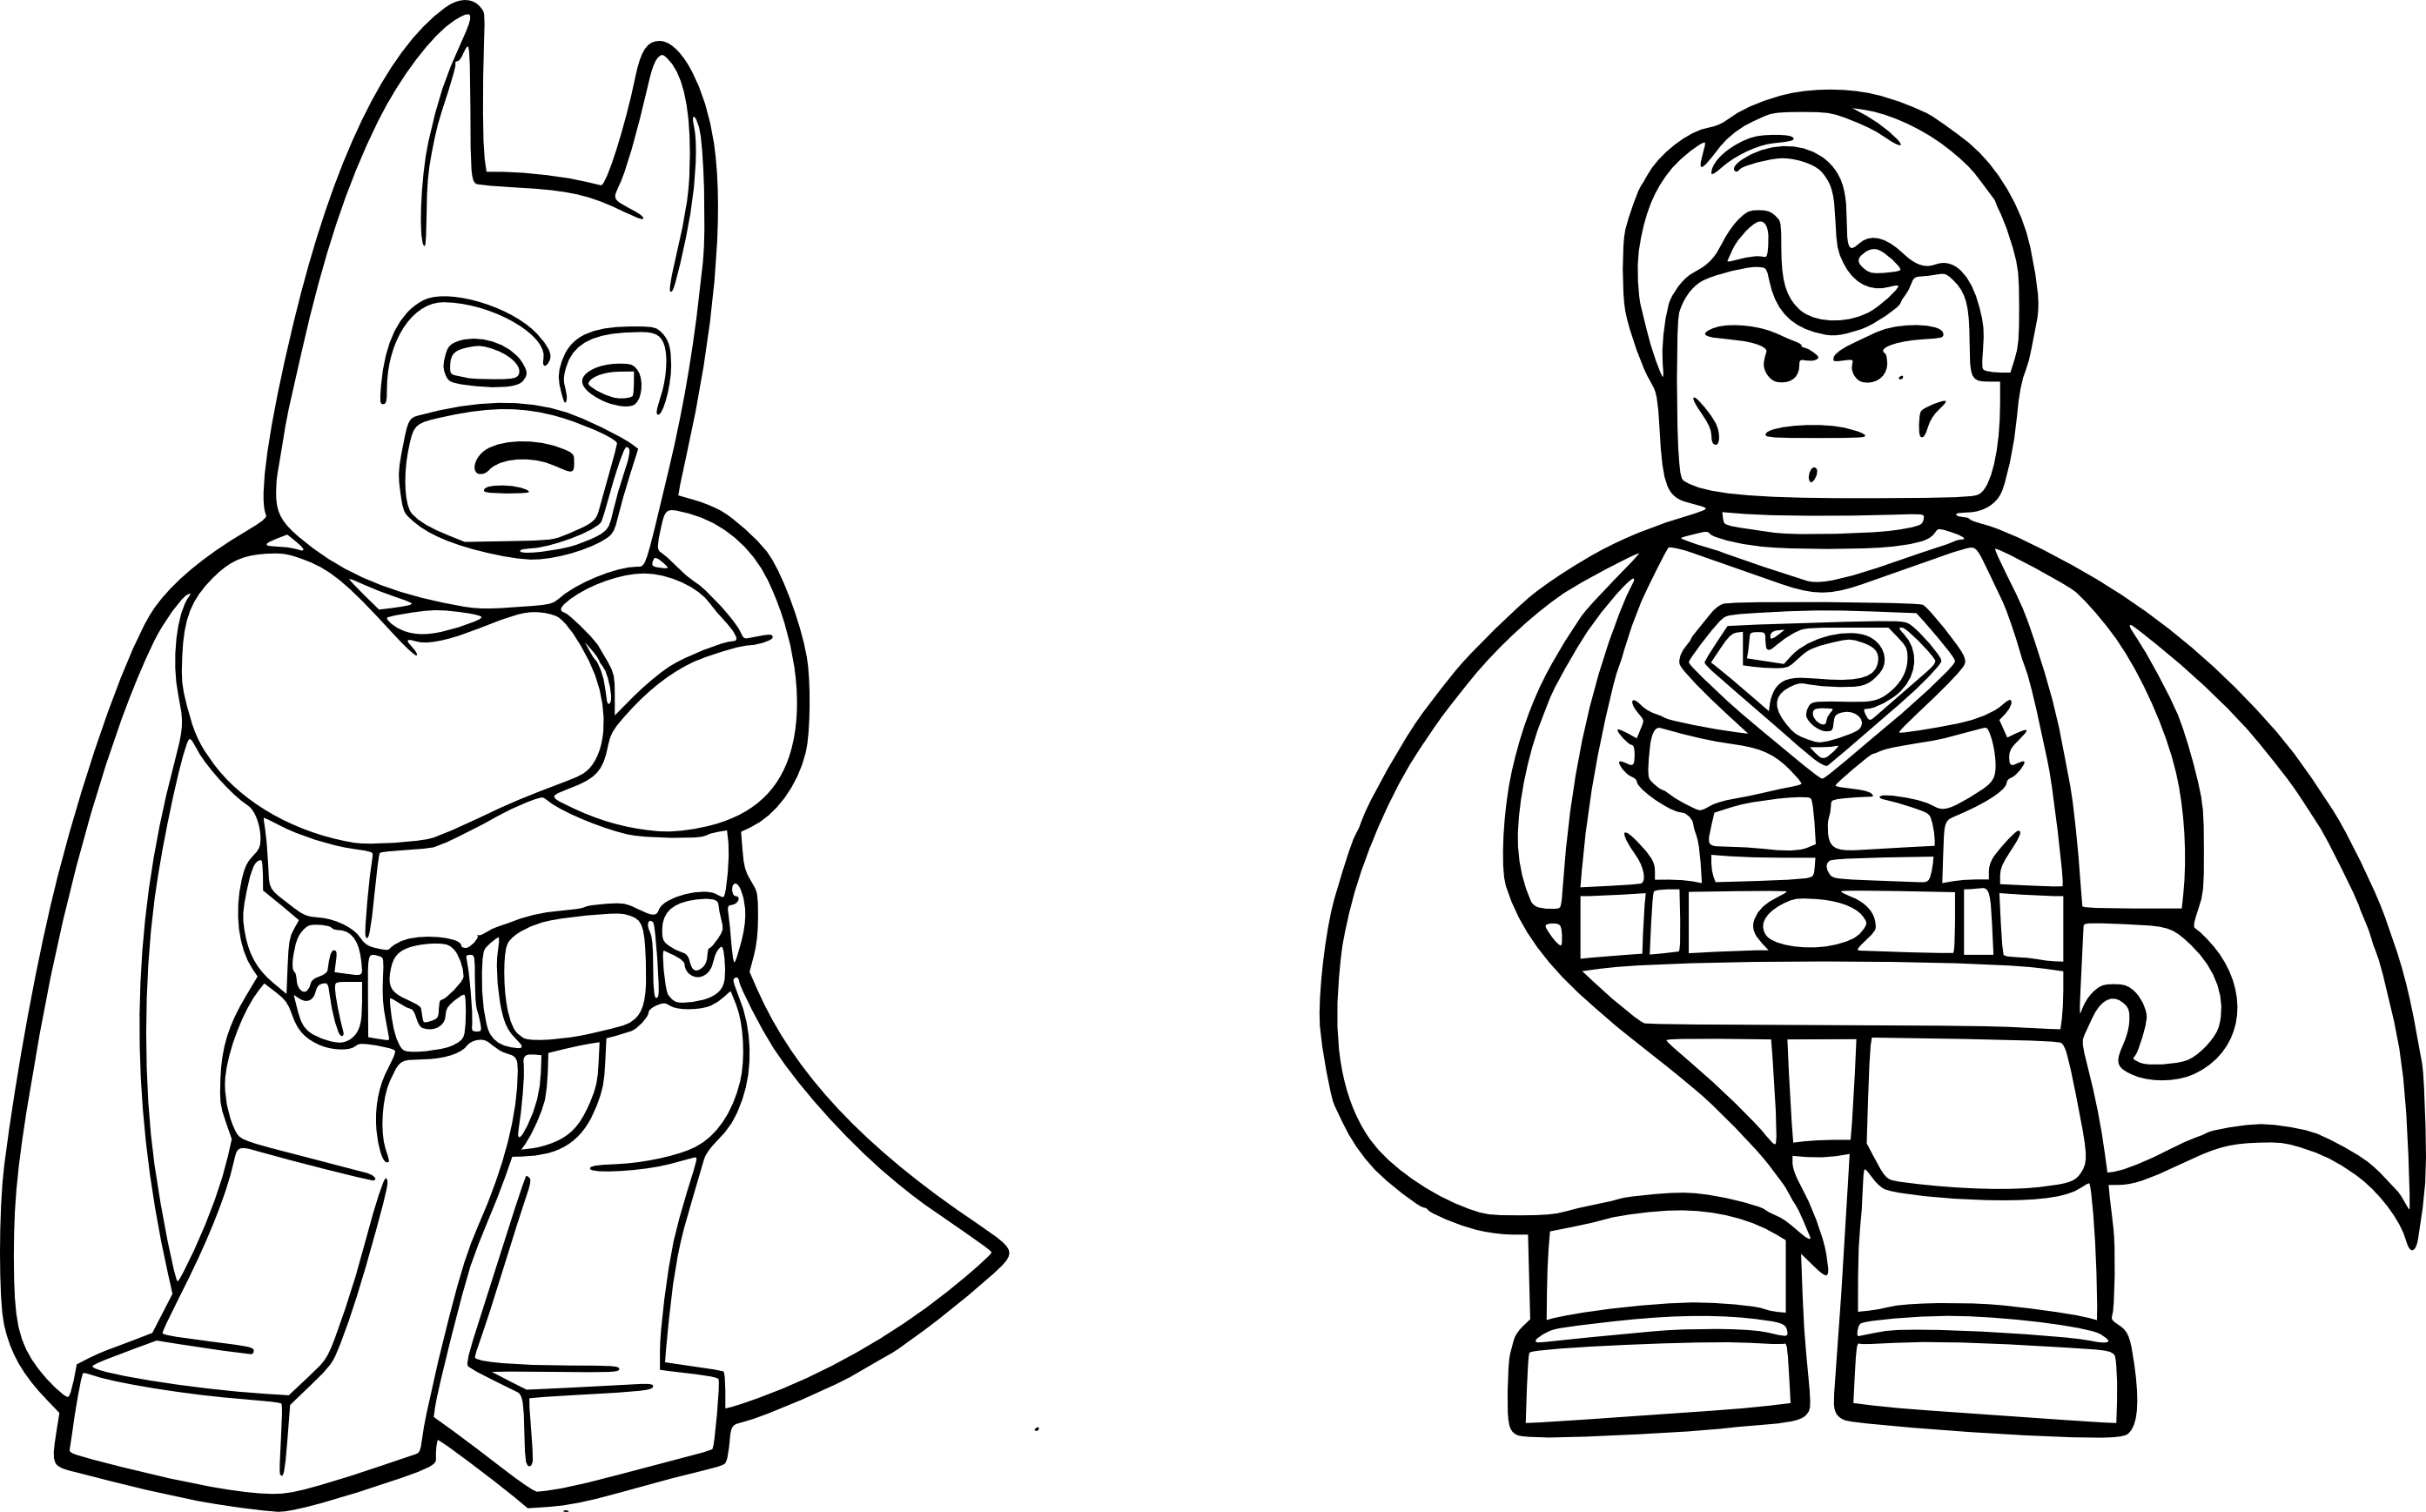 Coloriage batman superman lego imprimer - Dessin lego a colorier ...